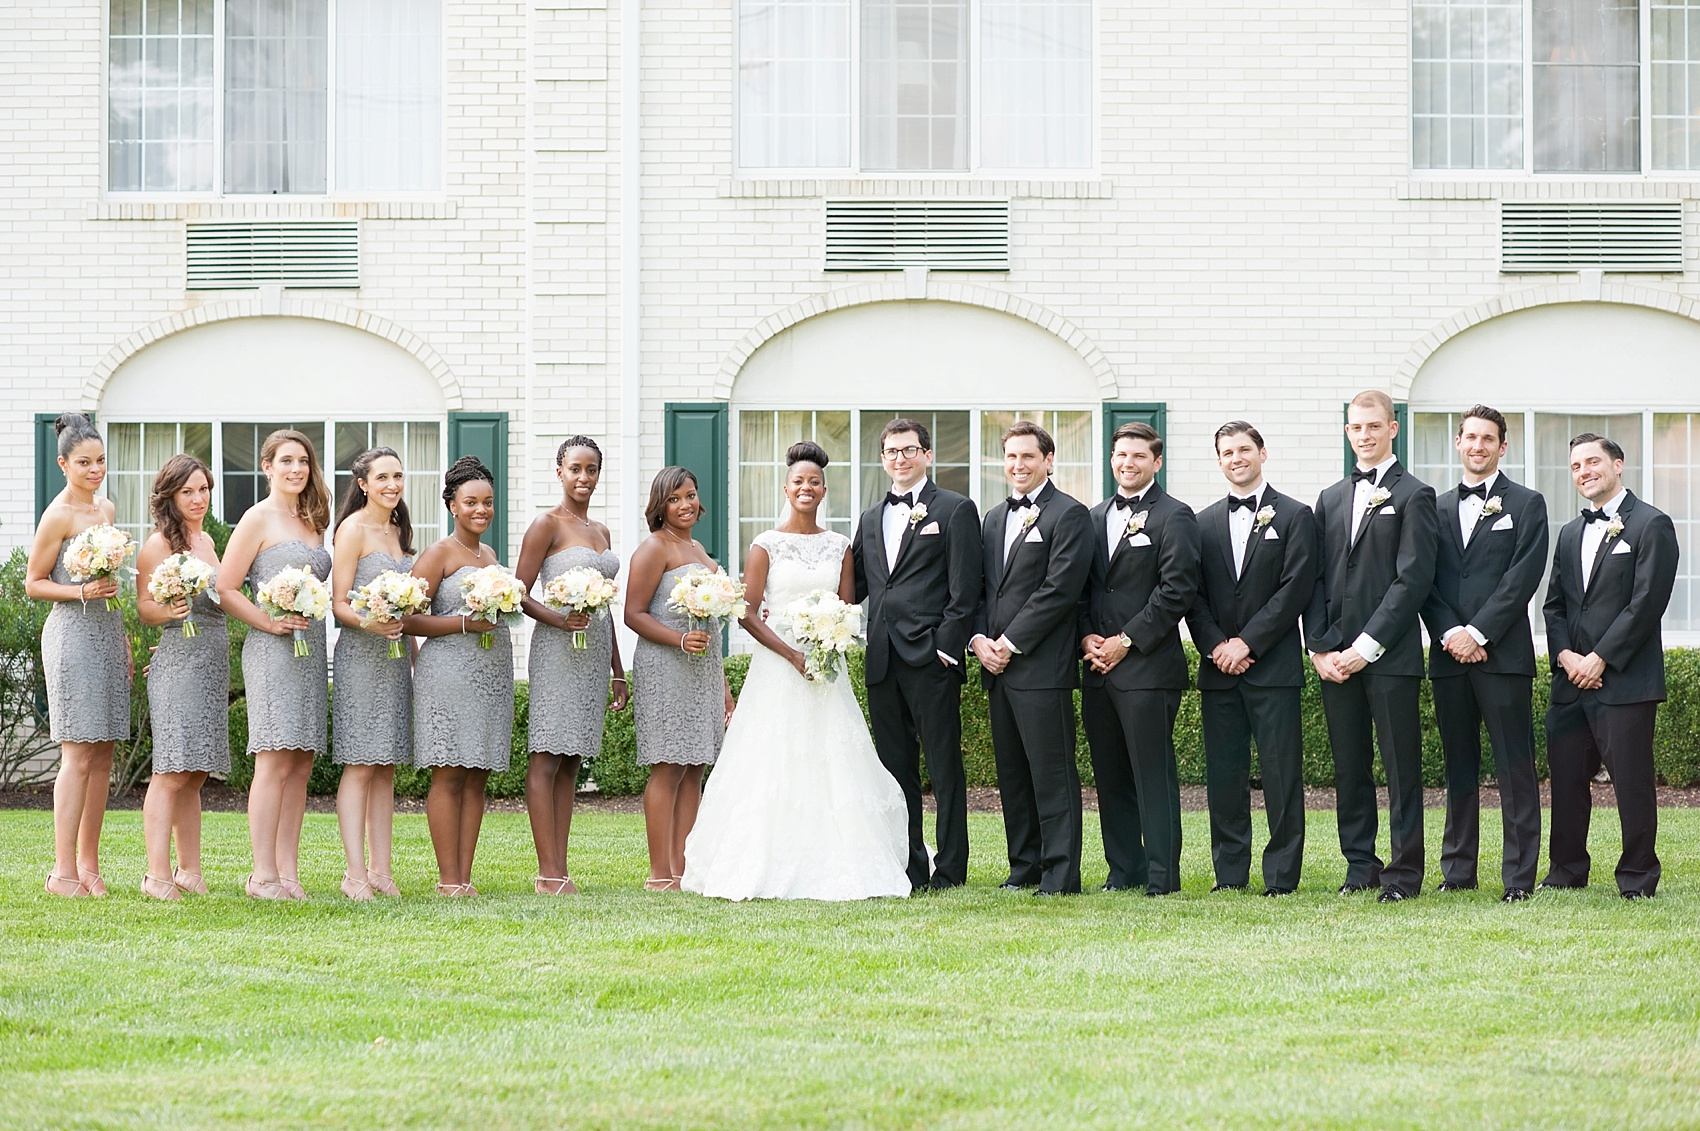 Wedding party in grey lace and black tuxedos at The Conservatory at the Madison Hotel, New Jersey. Photos by Mikkel Paige Photography.